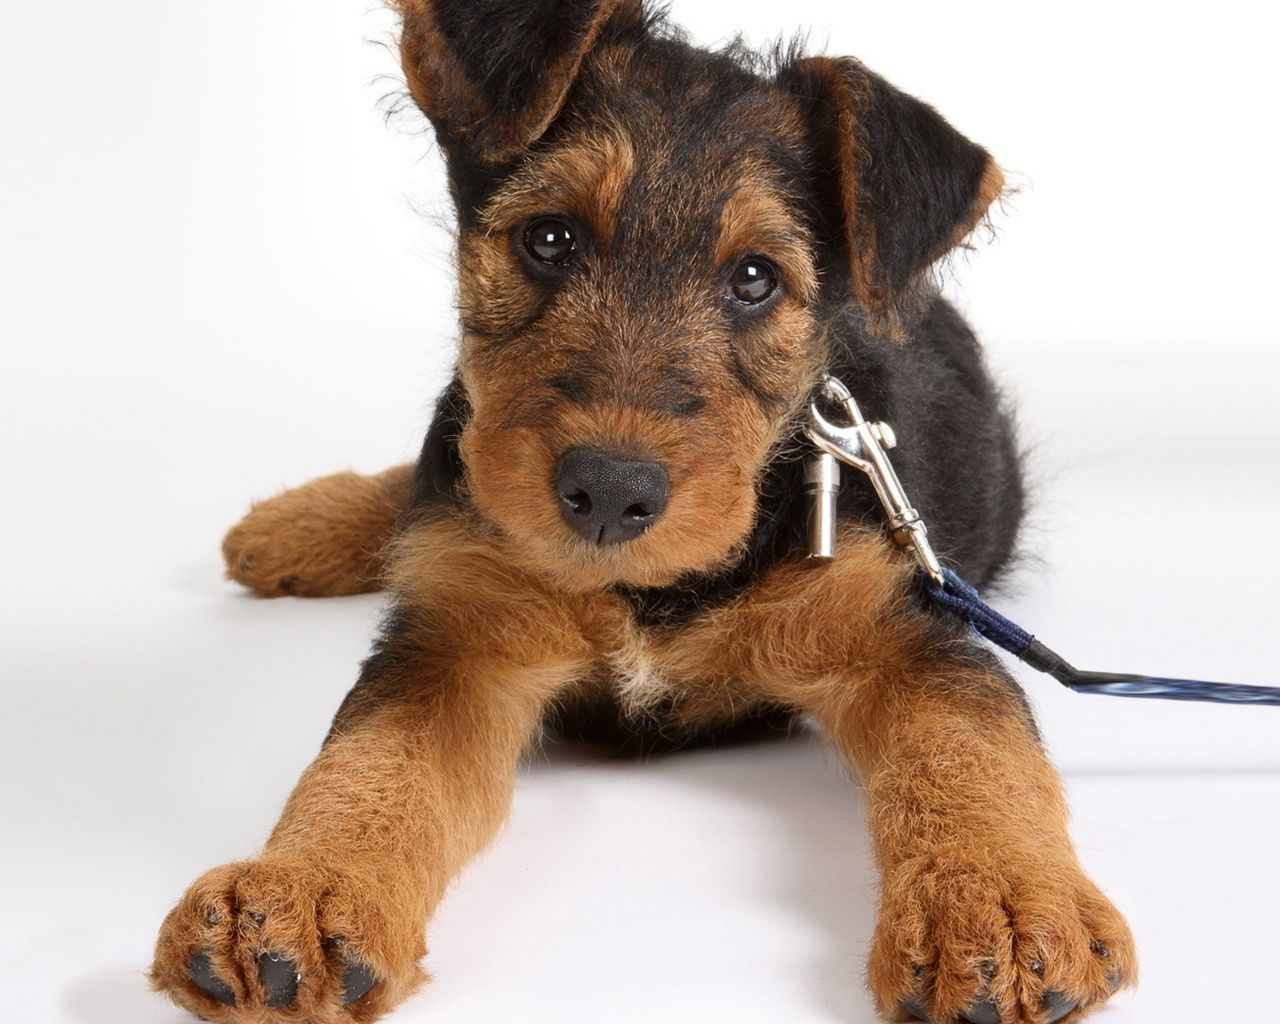 125 best images about Doggies on Pinterest | Airedale terrier ...